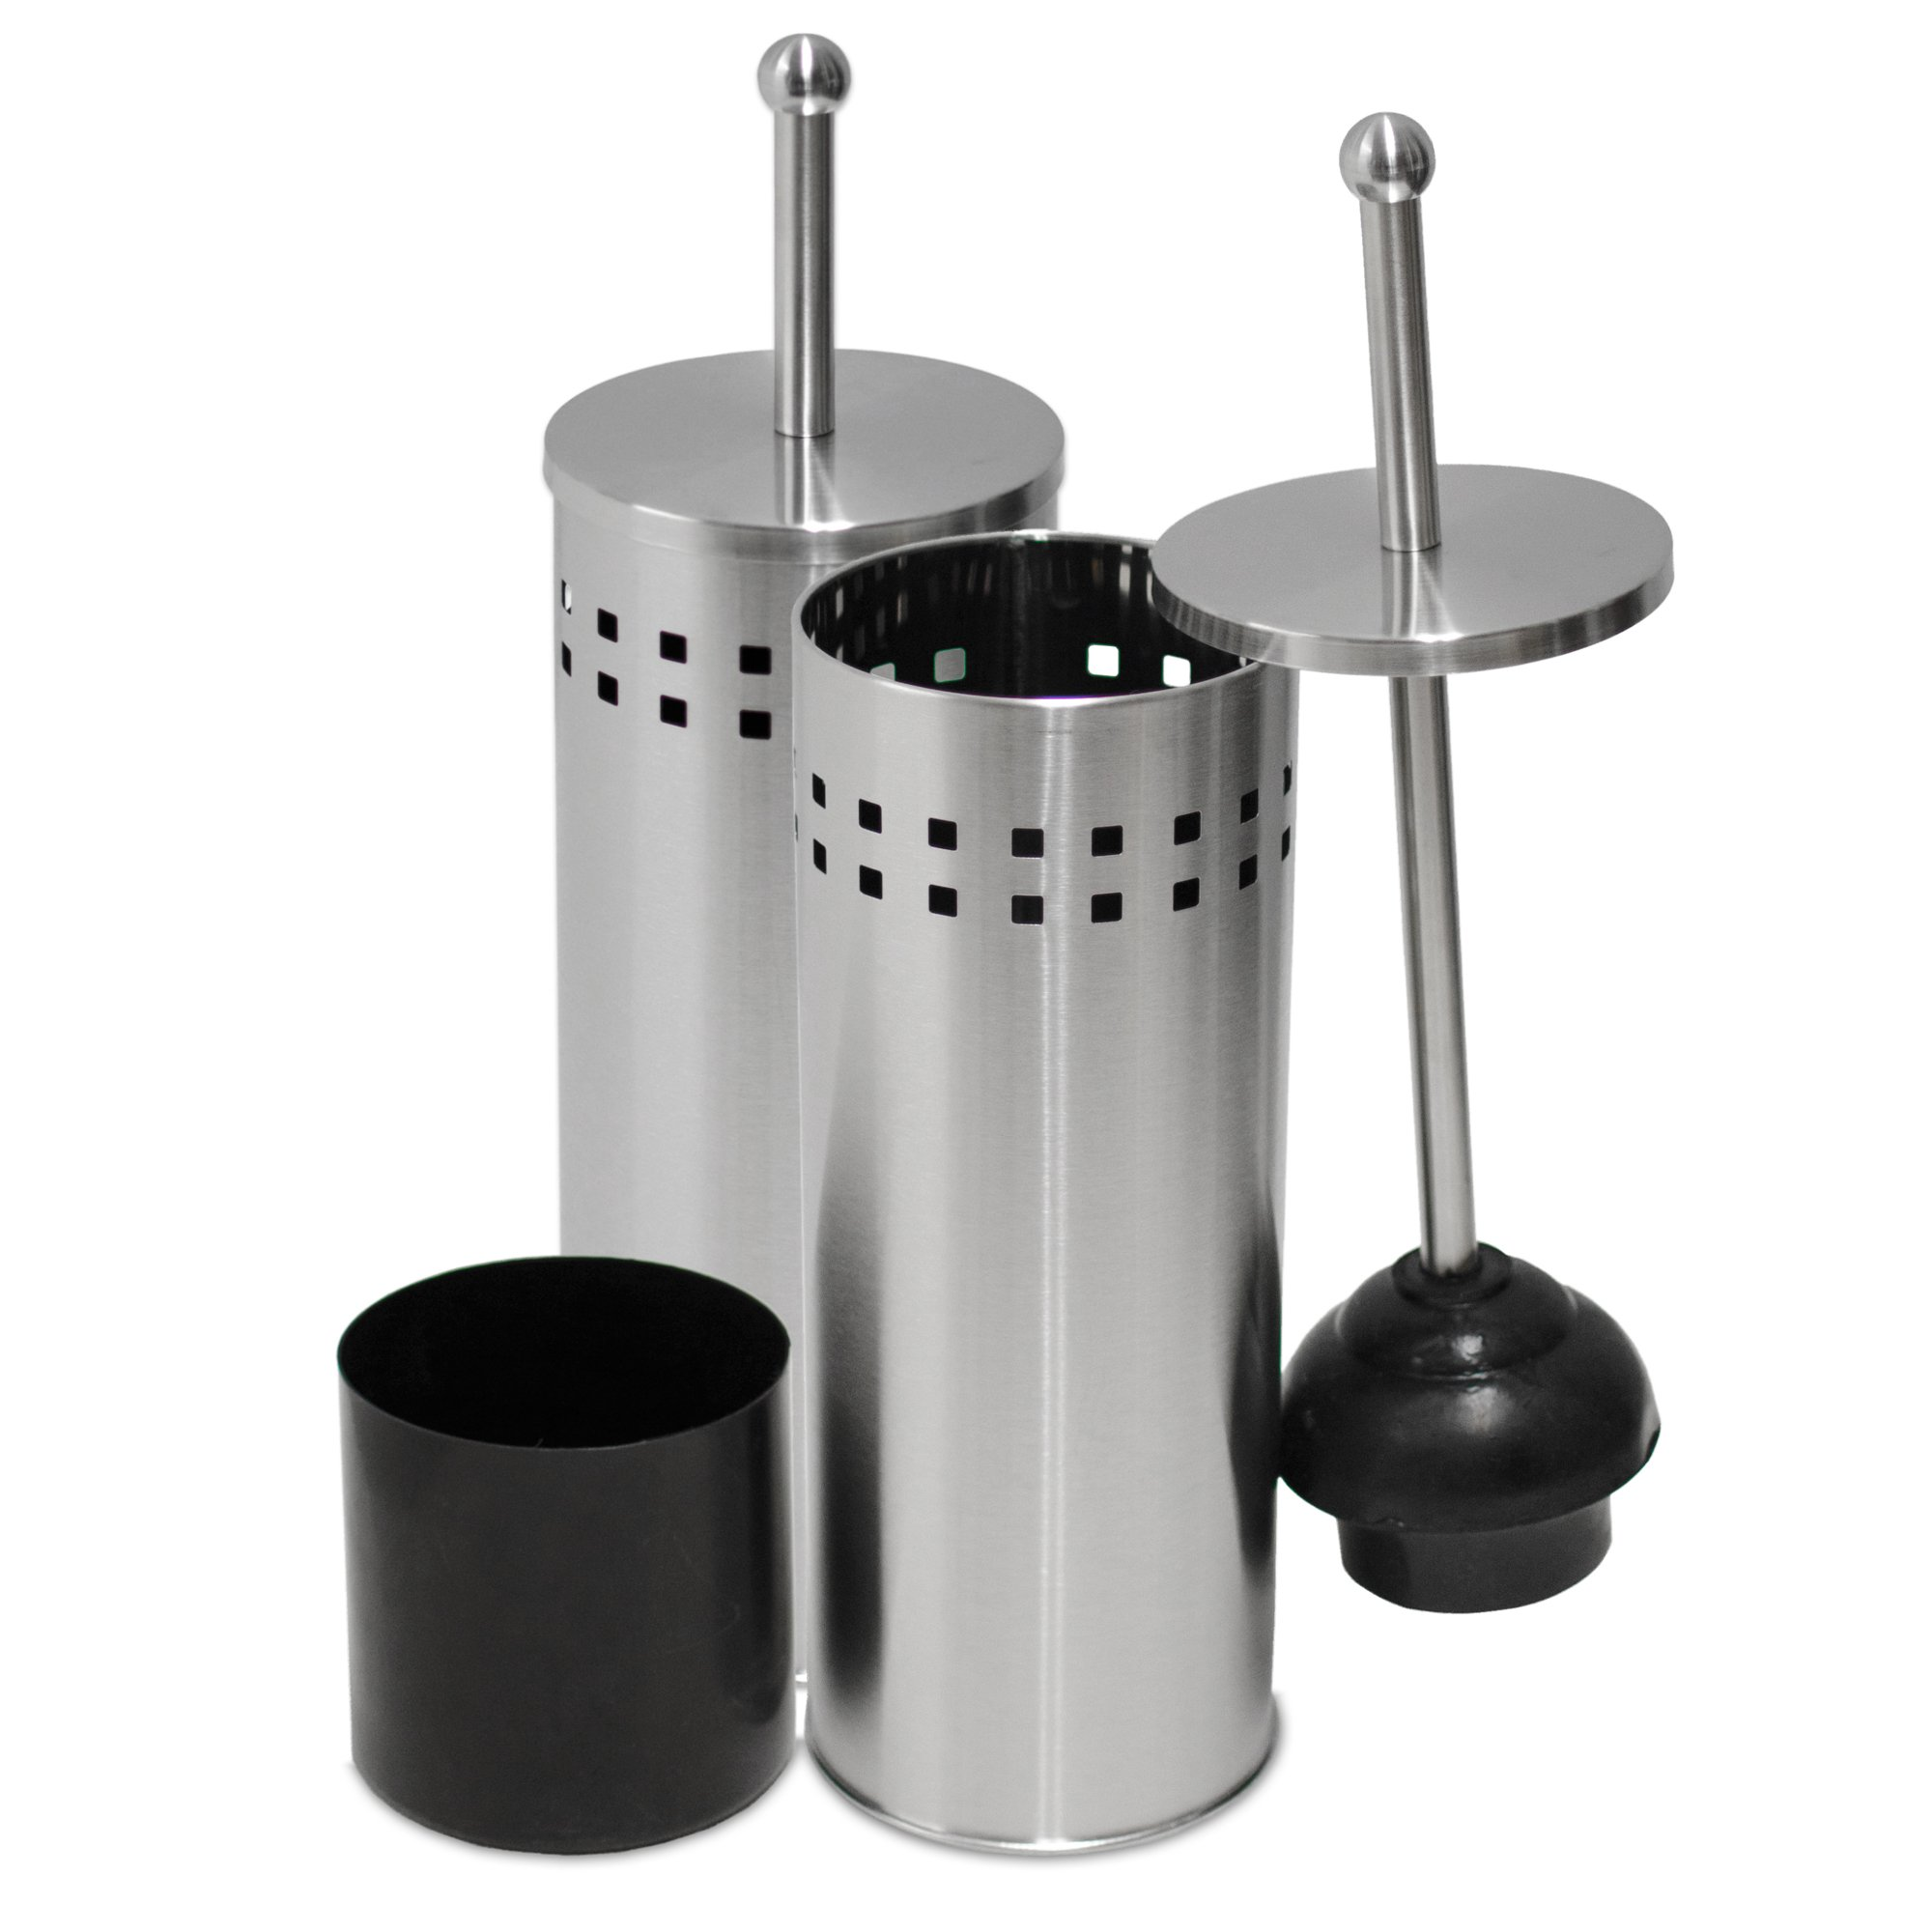 Oasis Collection Toilet Plunger & Holder, Stainless Steel Matte Finish TP029558-2 Pack by Oasis Collection